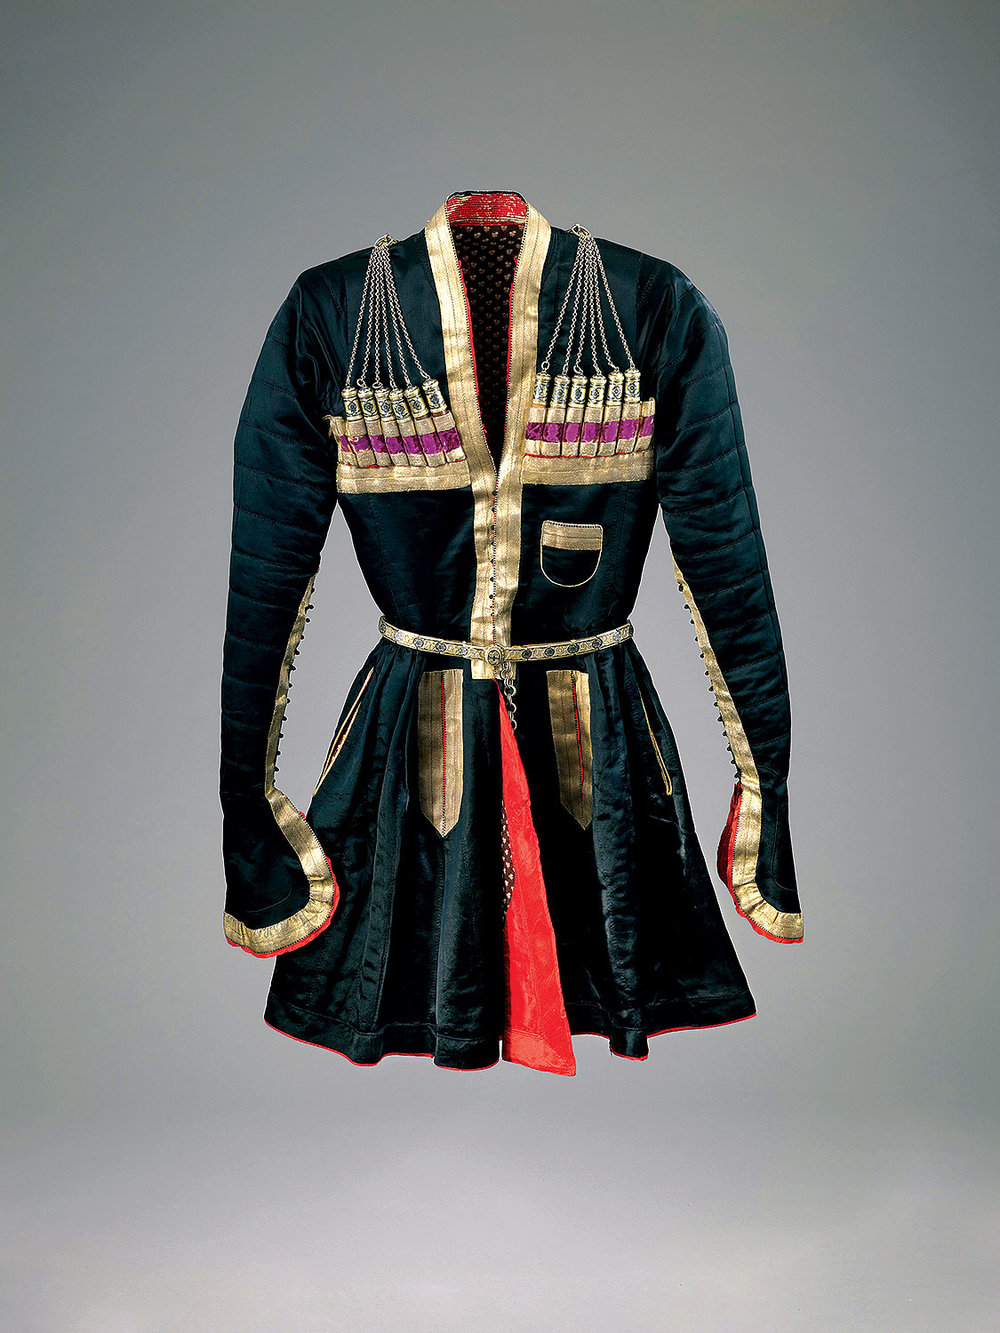 MAN'S COAT of silk, gilt ribbons, silver niello and imitation gunpowder cartridges, Georgia, early twentieth century.  Photograph by Mauro Magliani, courtesy of The Israel Museum, Jerusalem.